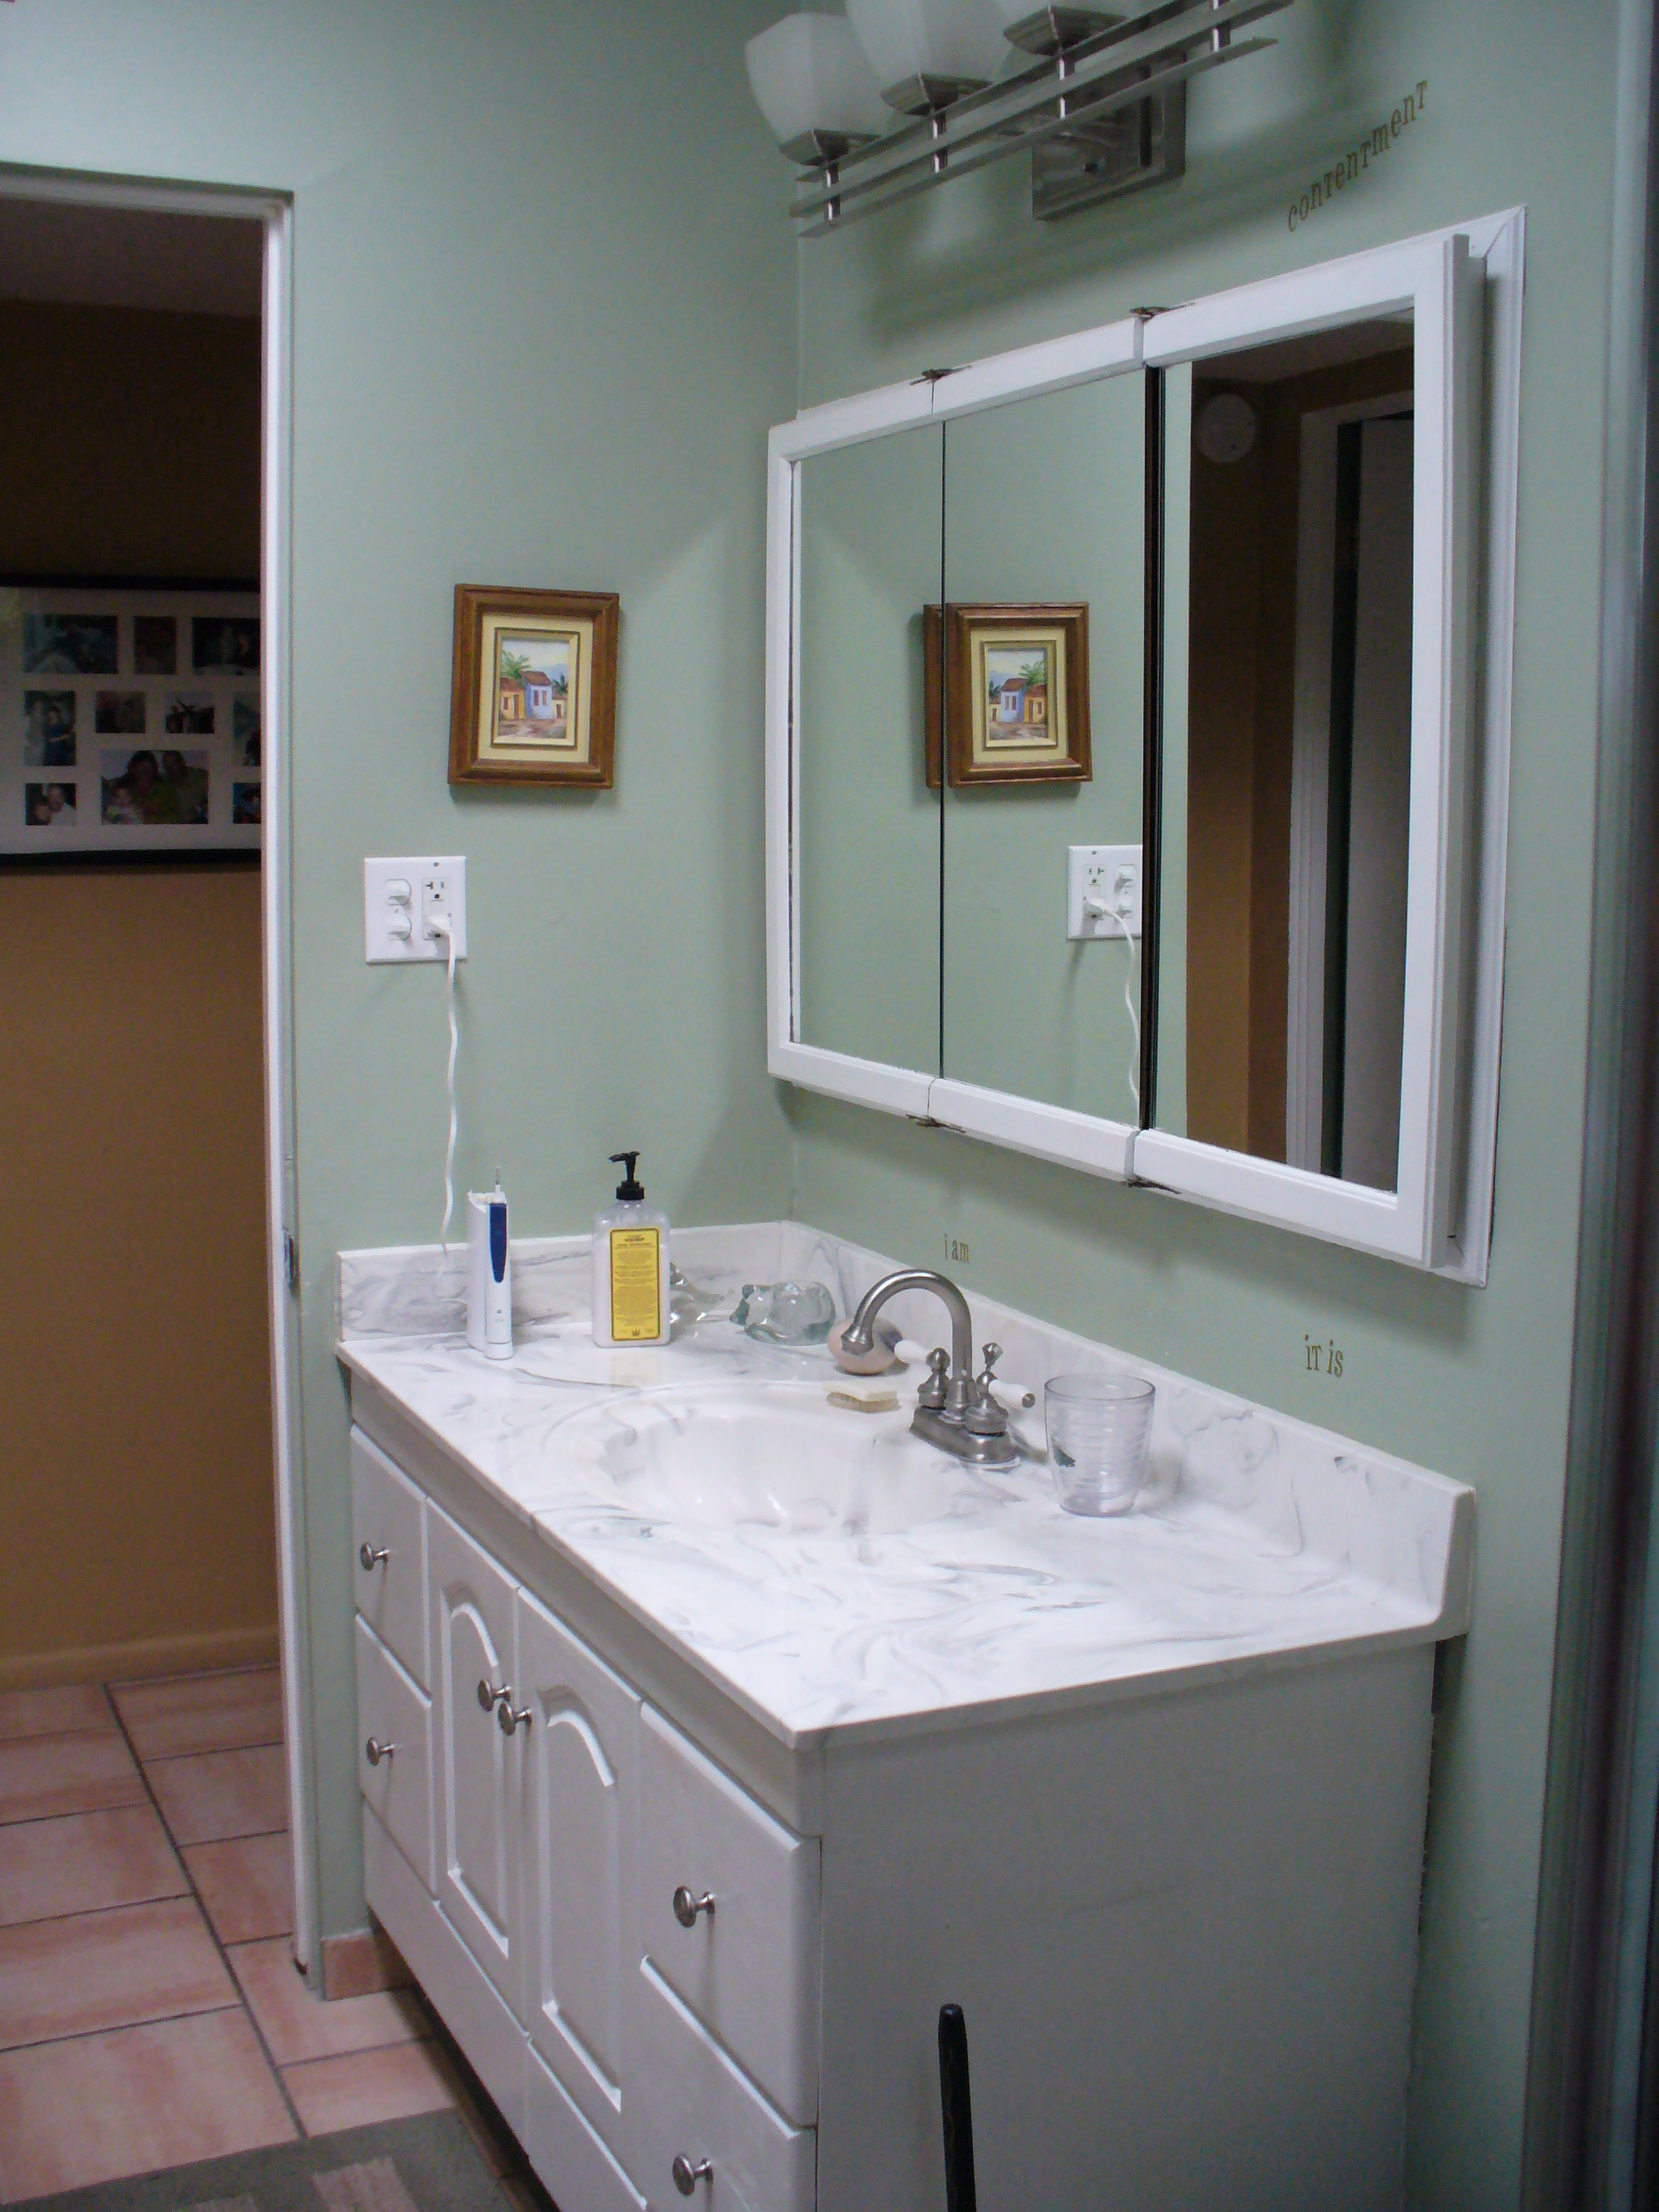 bathroom cabinet remodel. Bathroom Vanity - Before Remodel Cabinet T